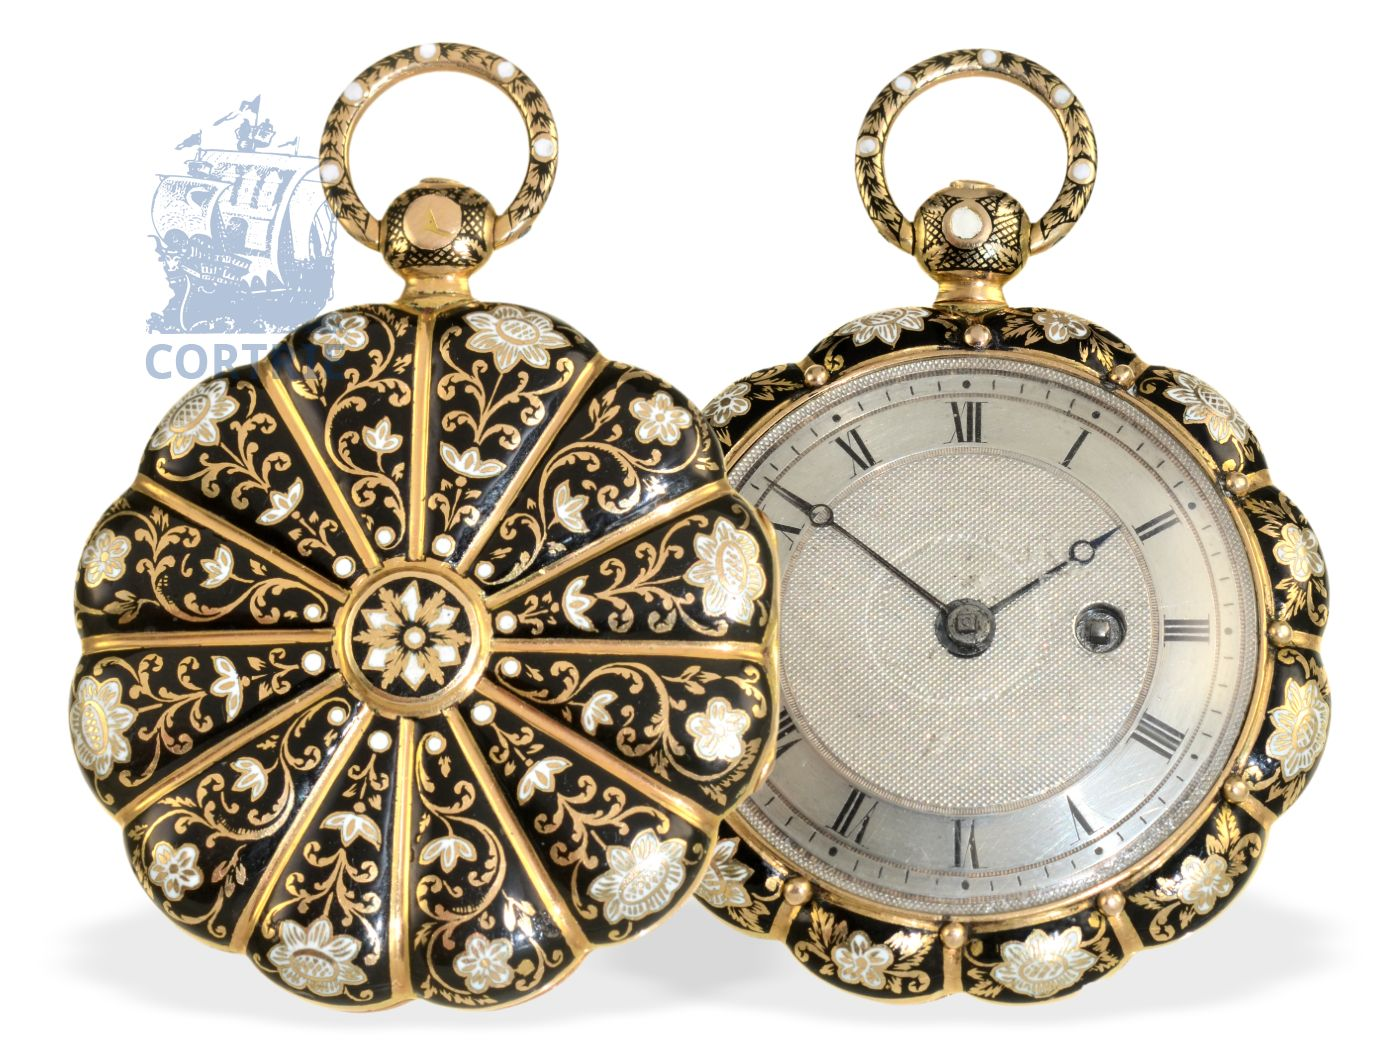 Pocket watch: extravagant gold/enamel watch, prime quality, attributed to Lépine, ca. 1830-